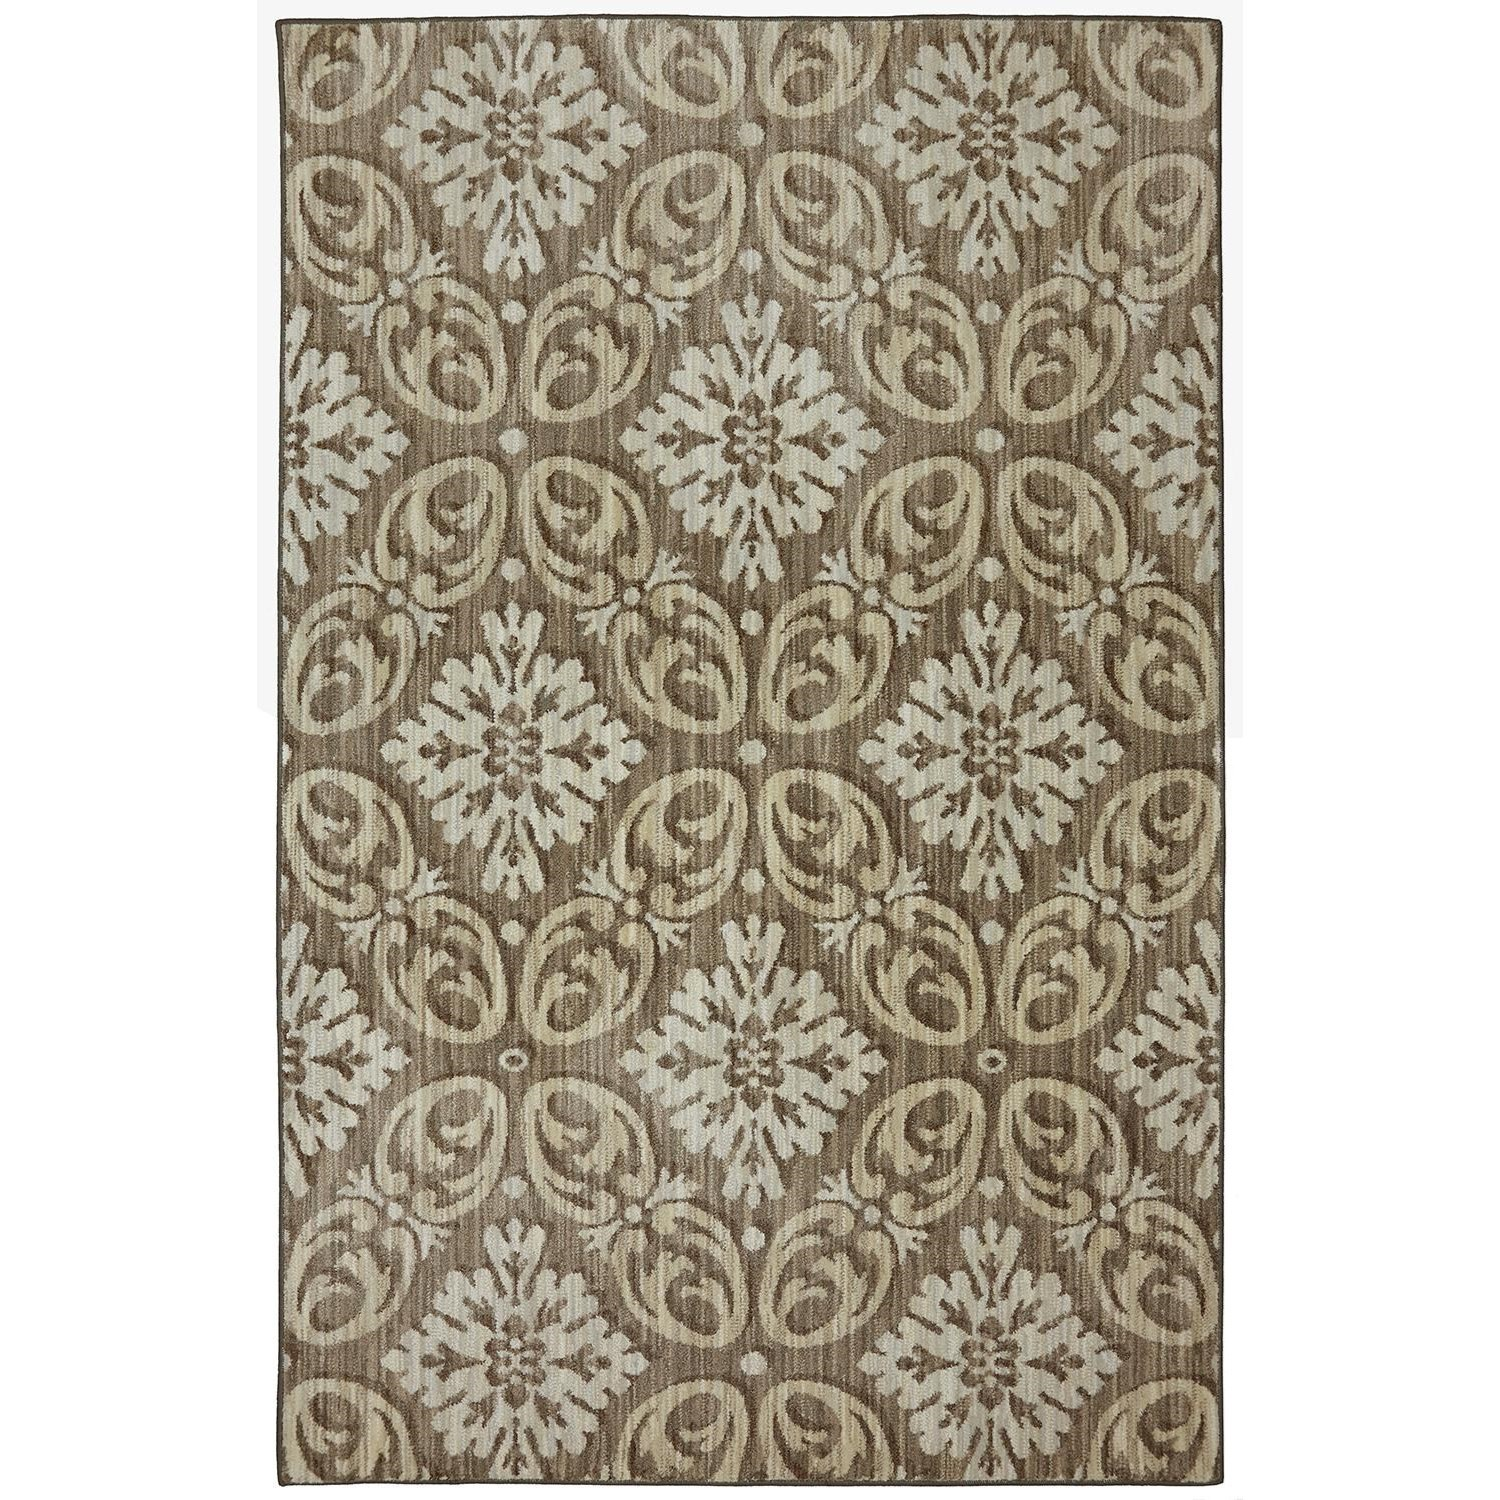 Karastan Rugs Euphoria 8'x11' Findon Brown Rug - Item Number: 90271 80062 096132